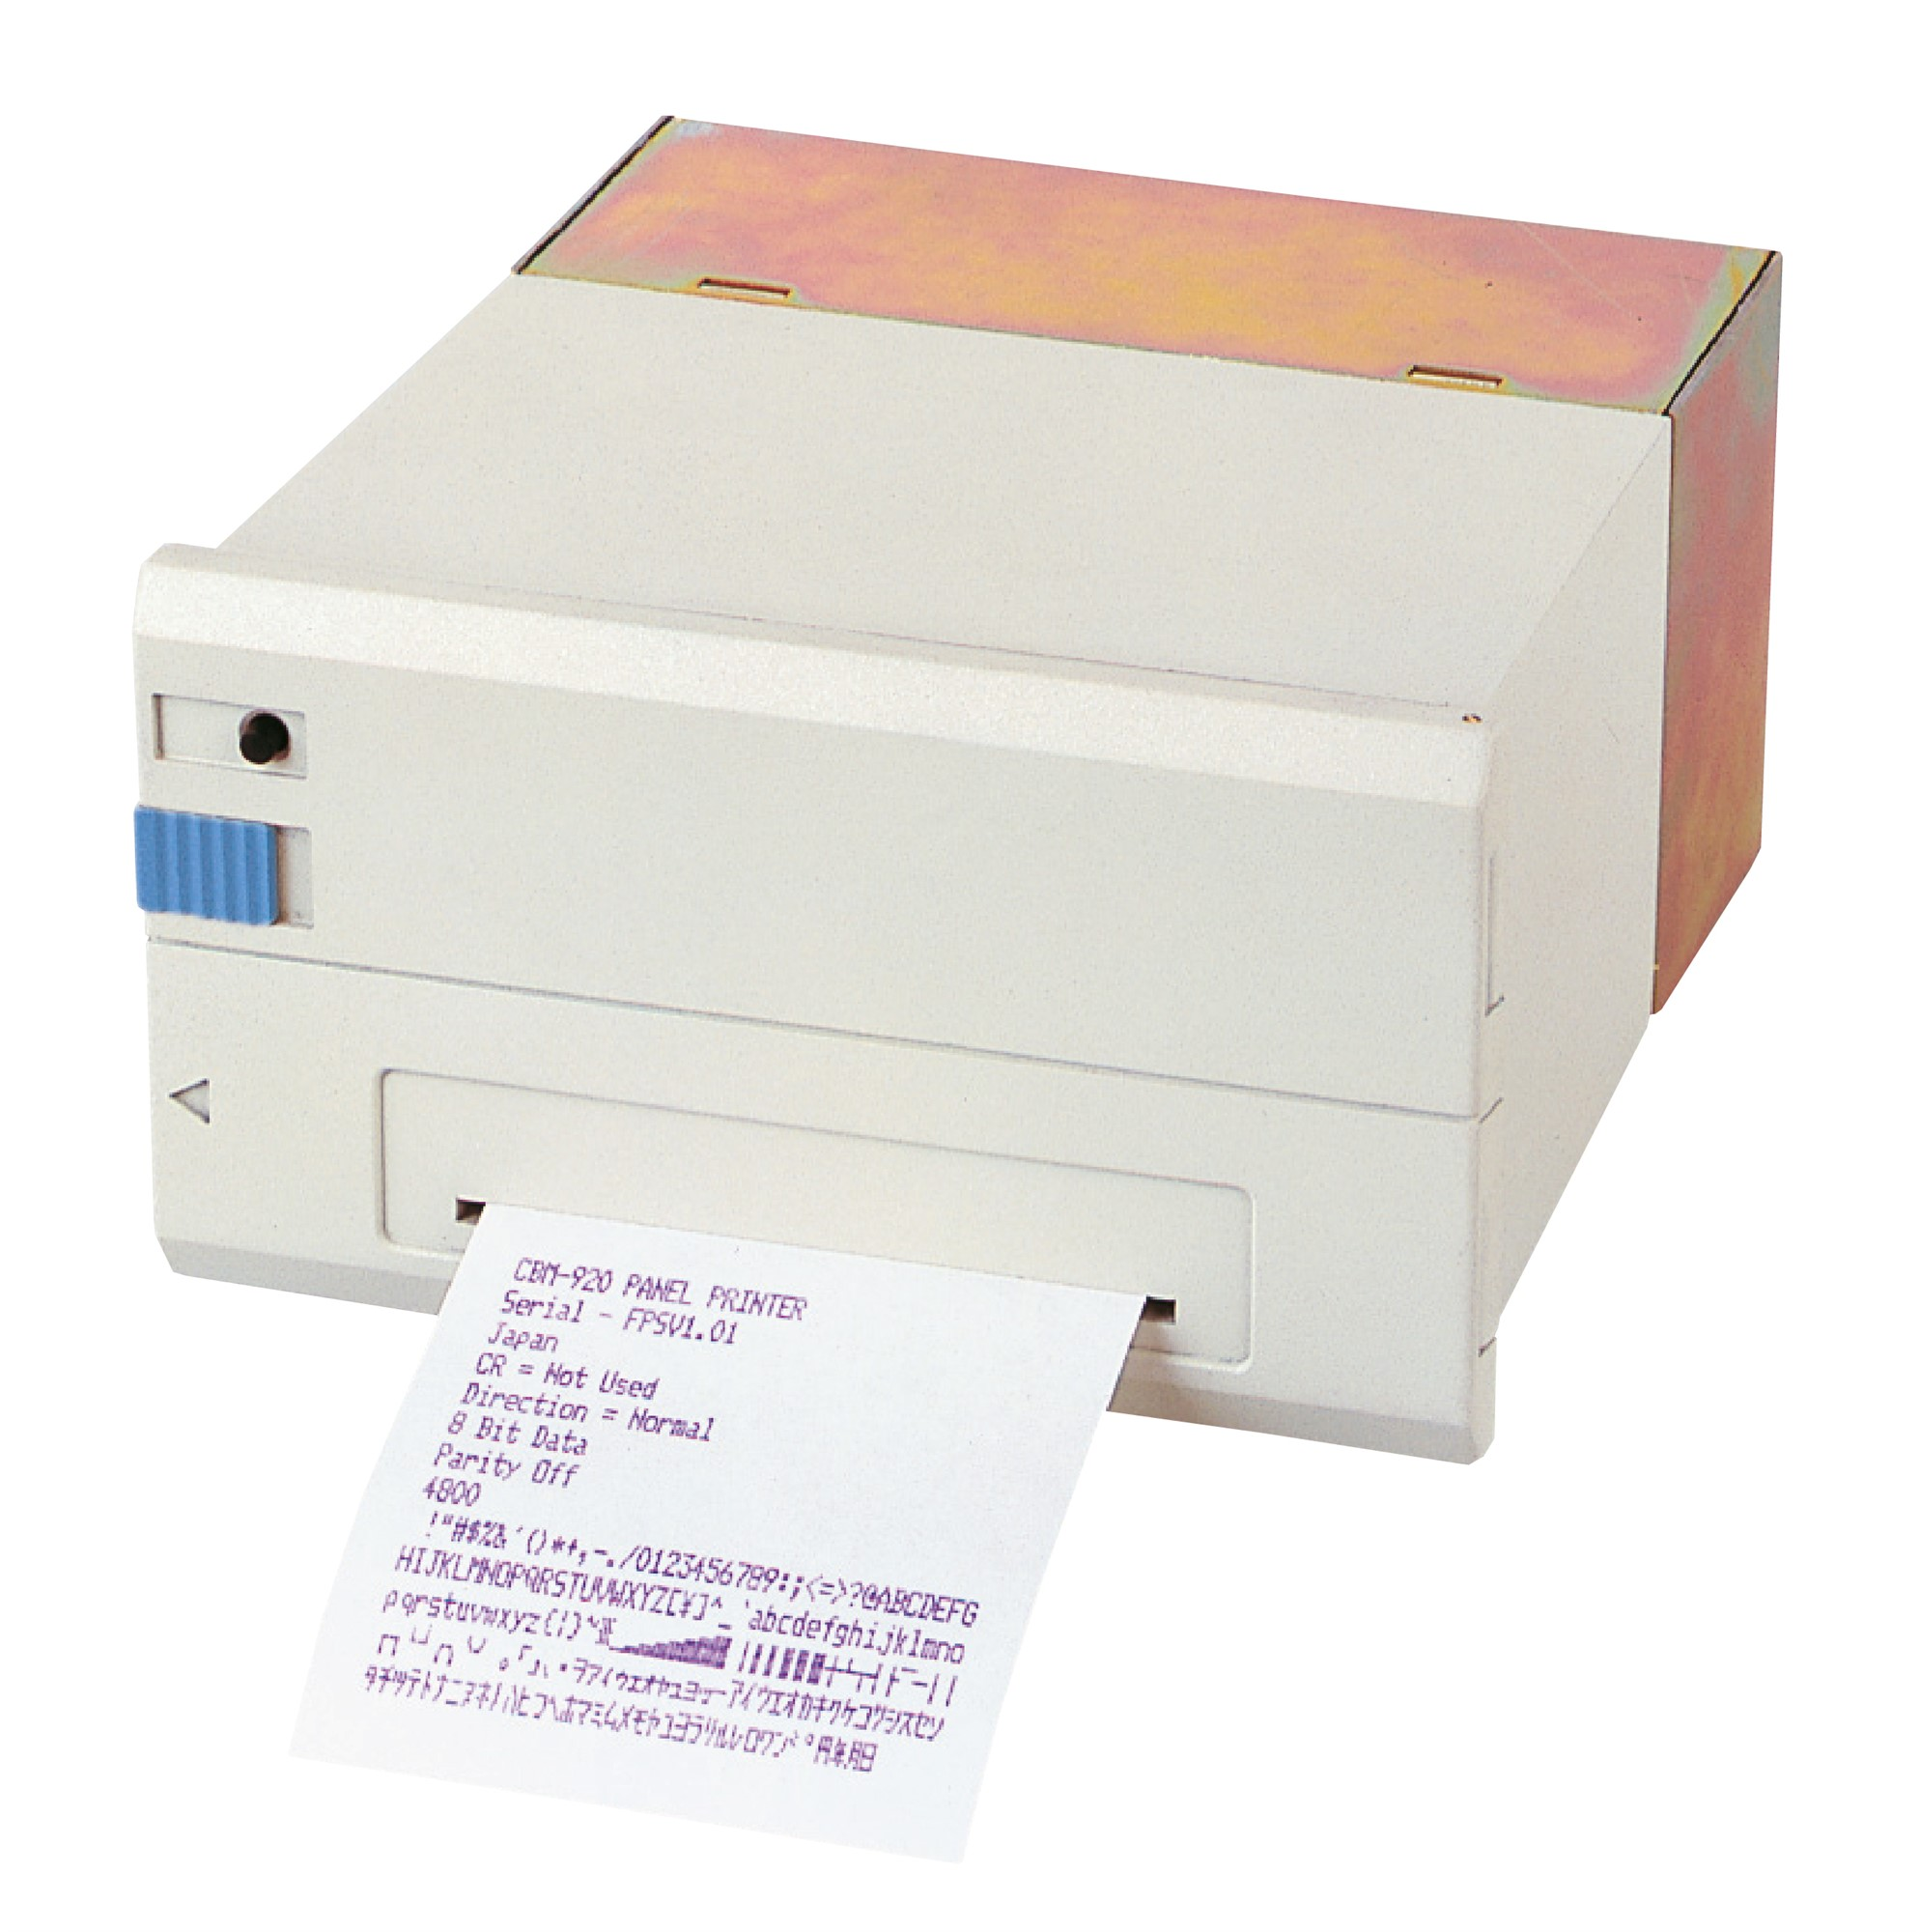 CITIZEN CBM-920II DOT MATRIX POS PRINTER